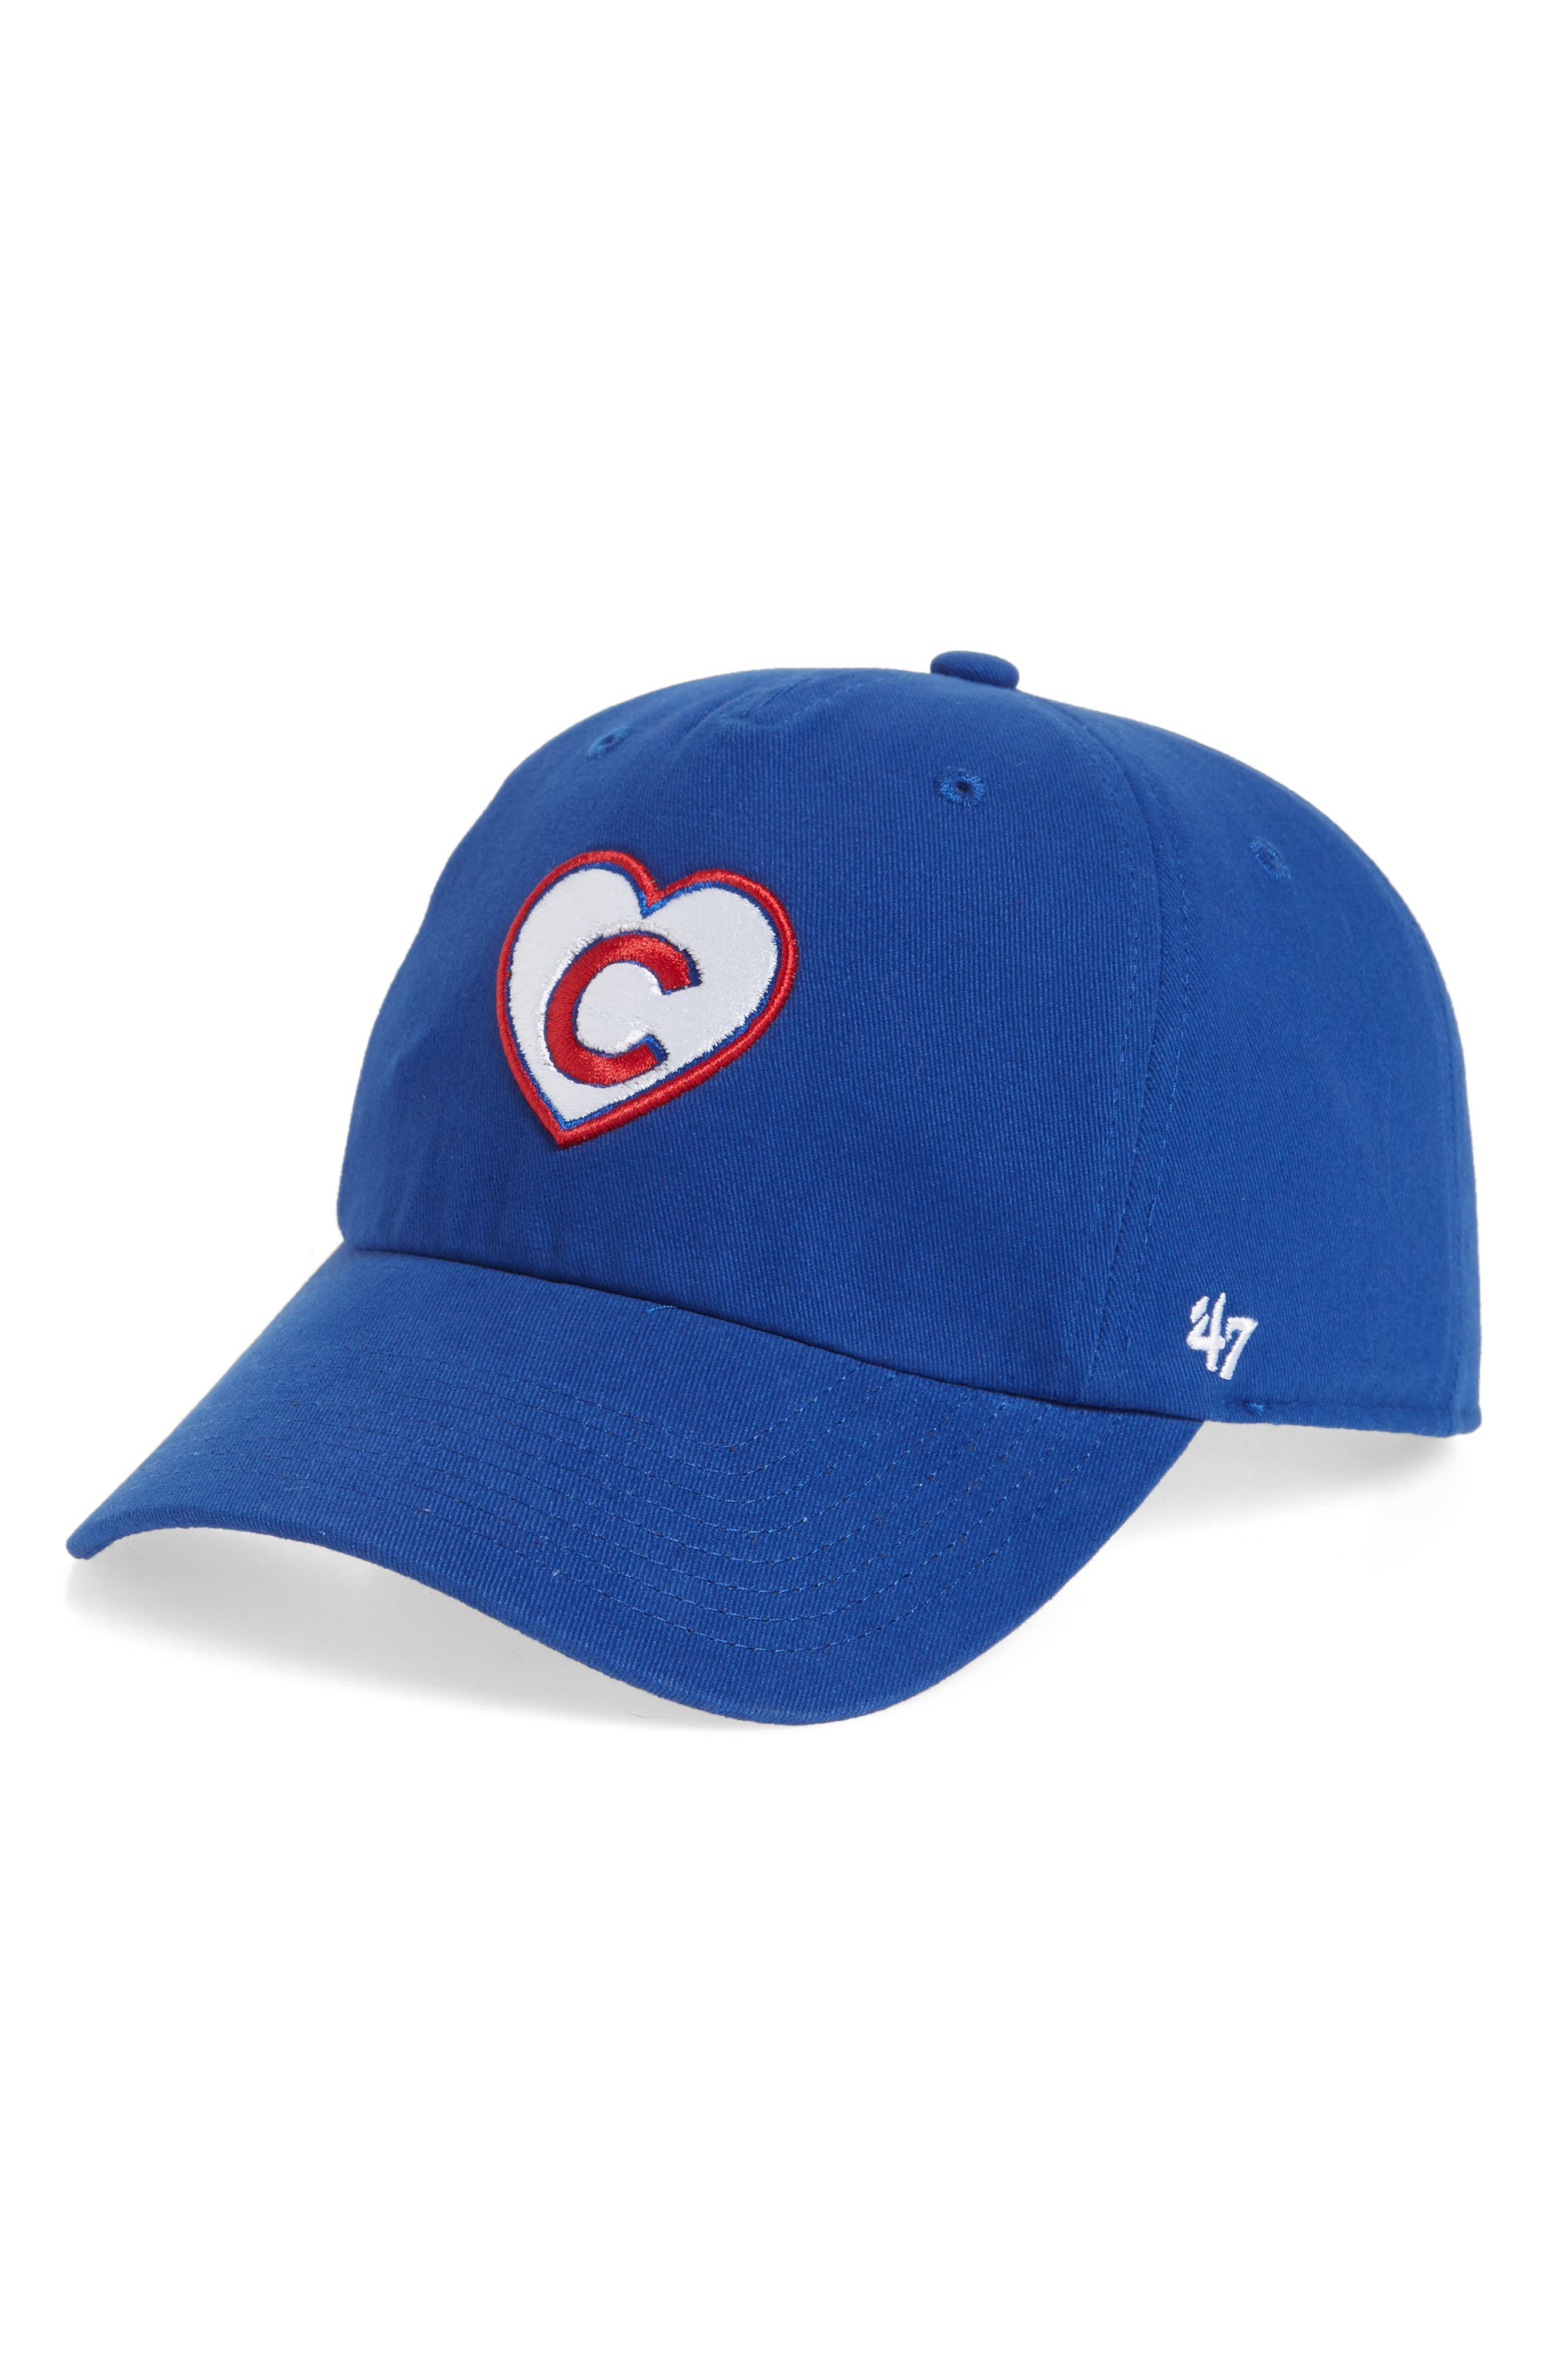 Courtney Clean-Up Chicago Cubs Baseball Cap,                         Main,                         color, Blue